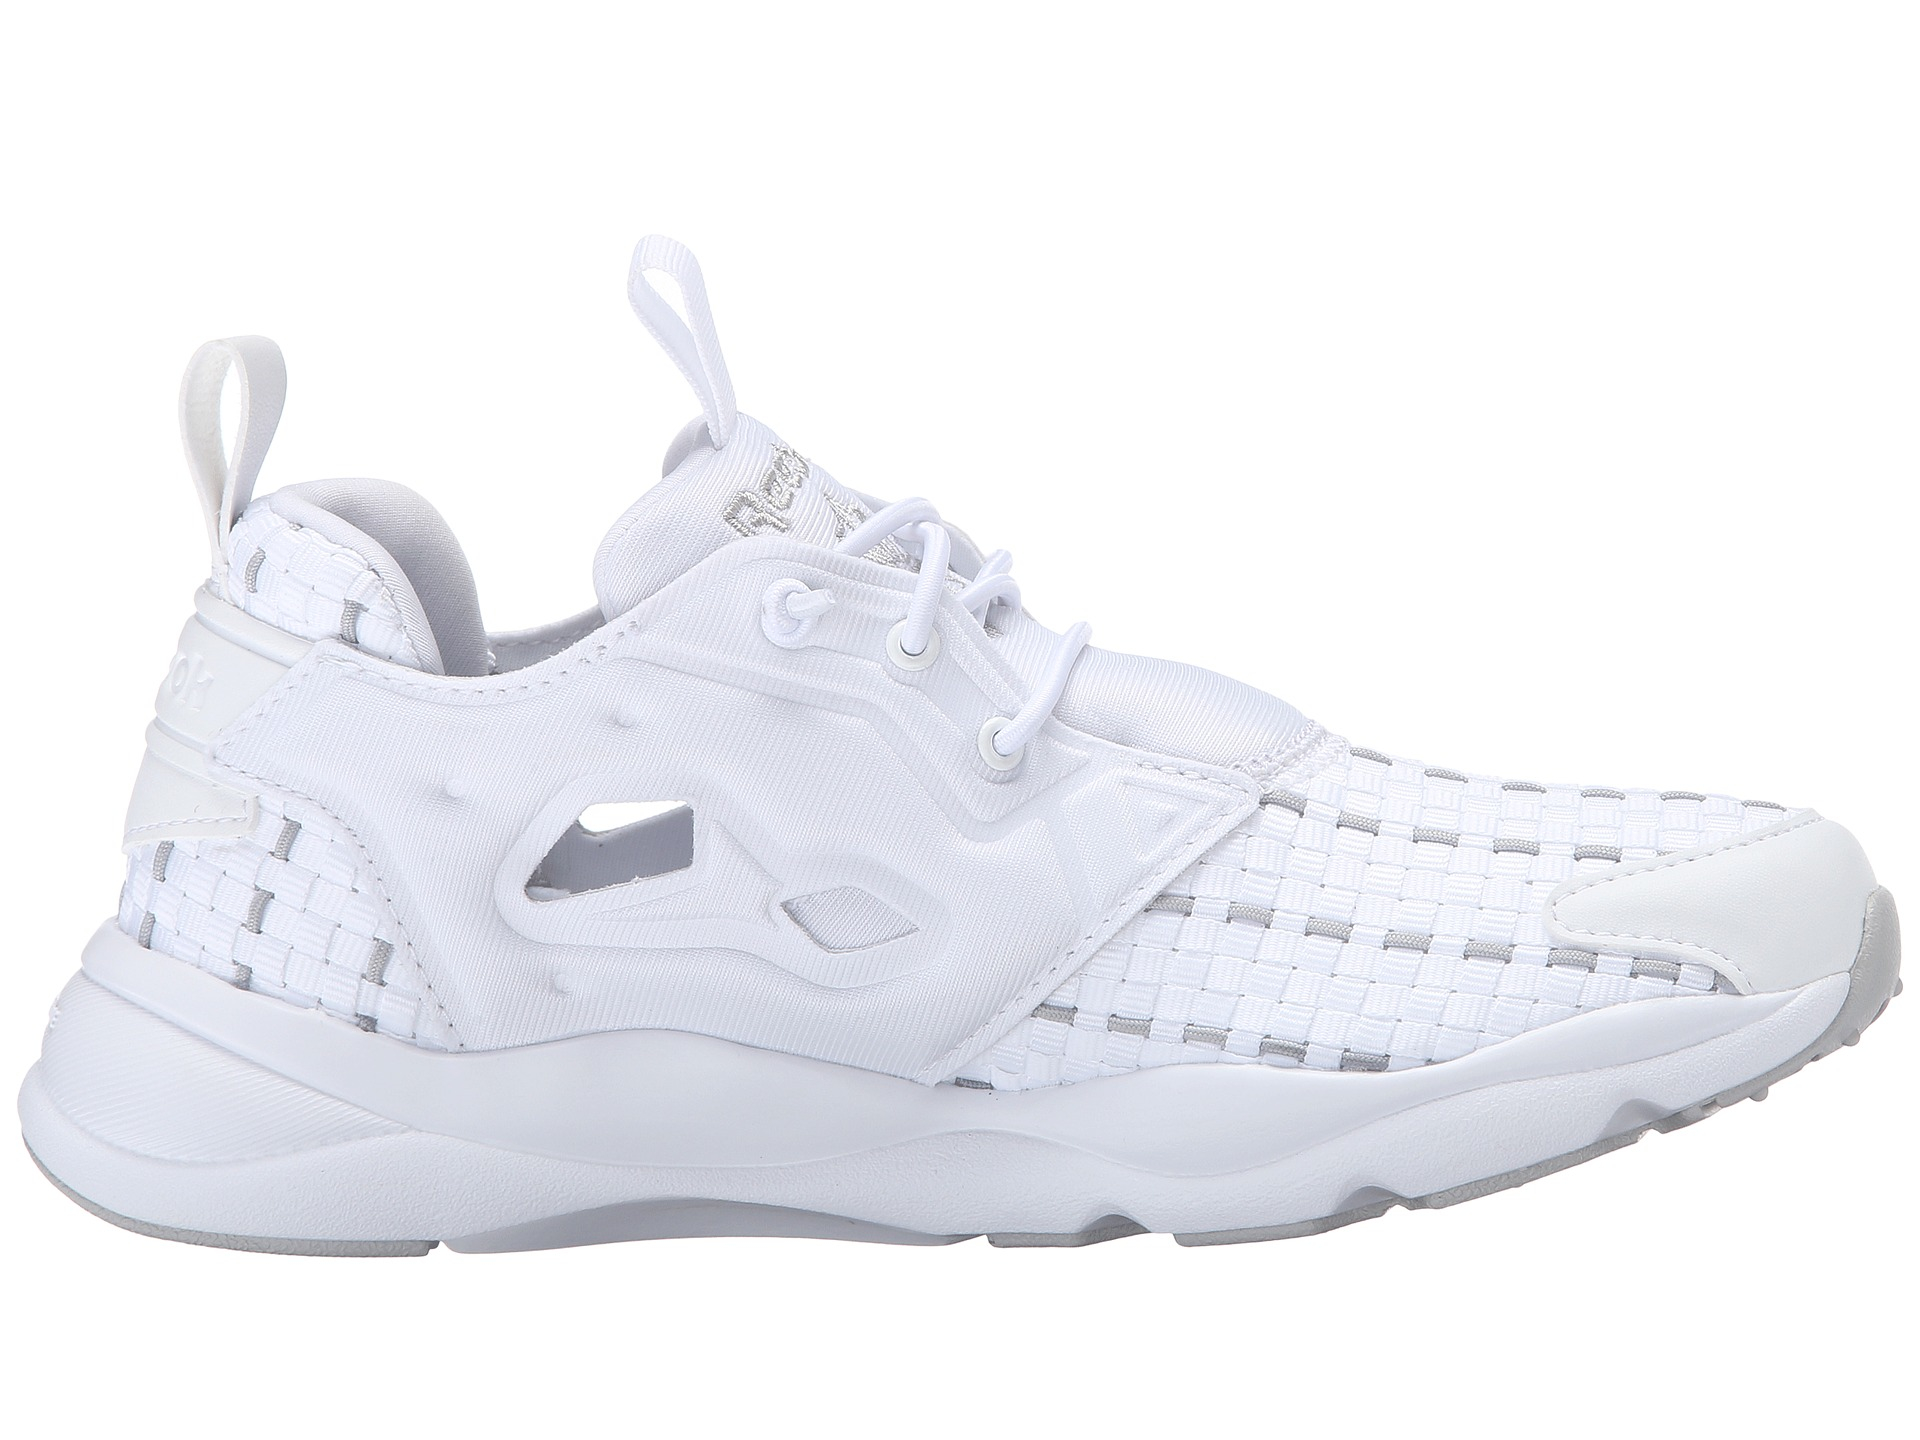 c9ef412c8a32 Lyst - Reebok Furylite New Woven in White